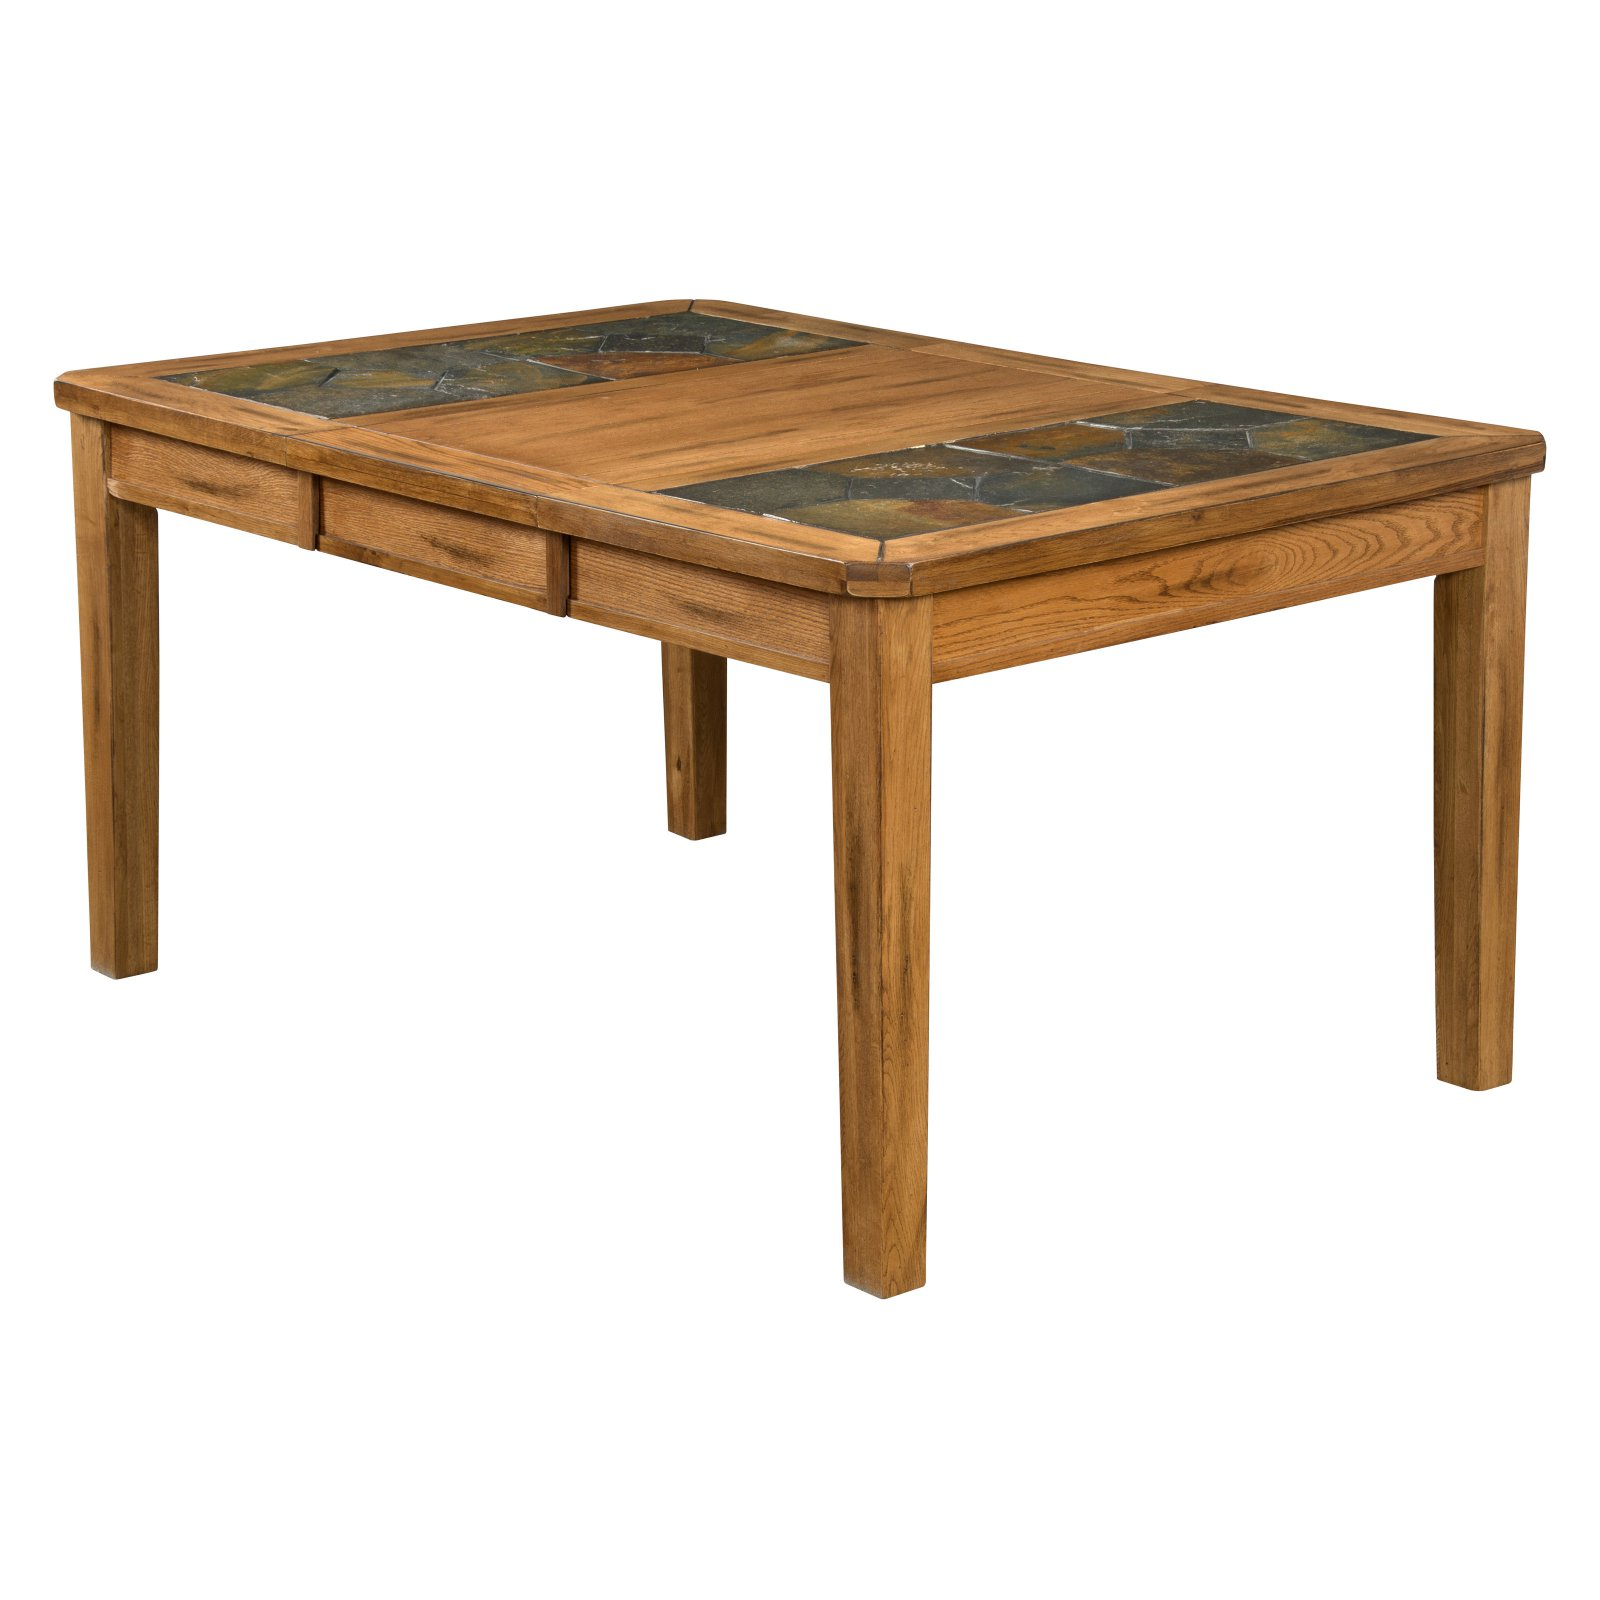 Sunny Designs Sedona Dining Table with Slate Top